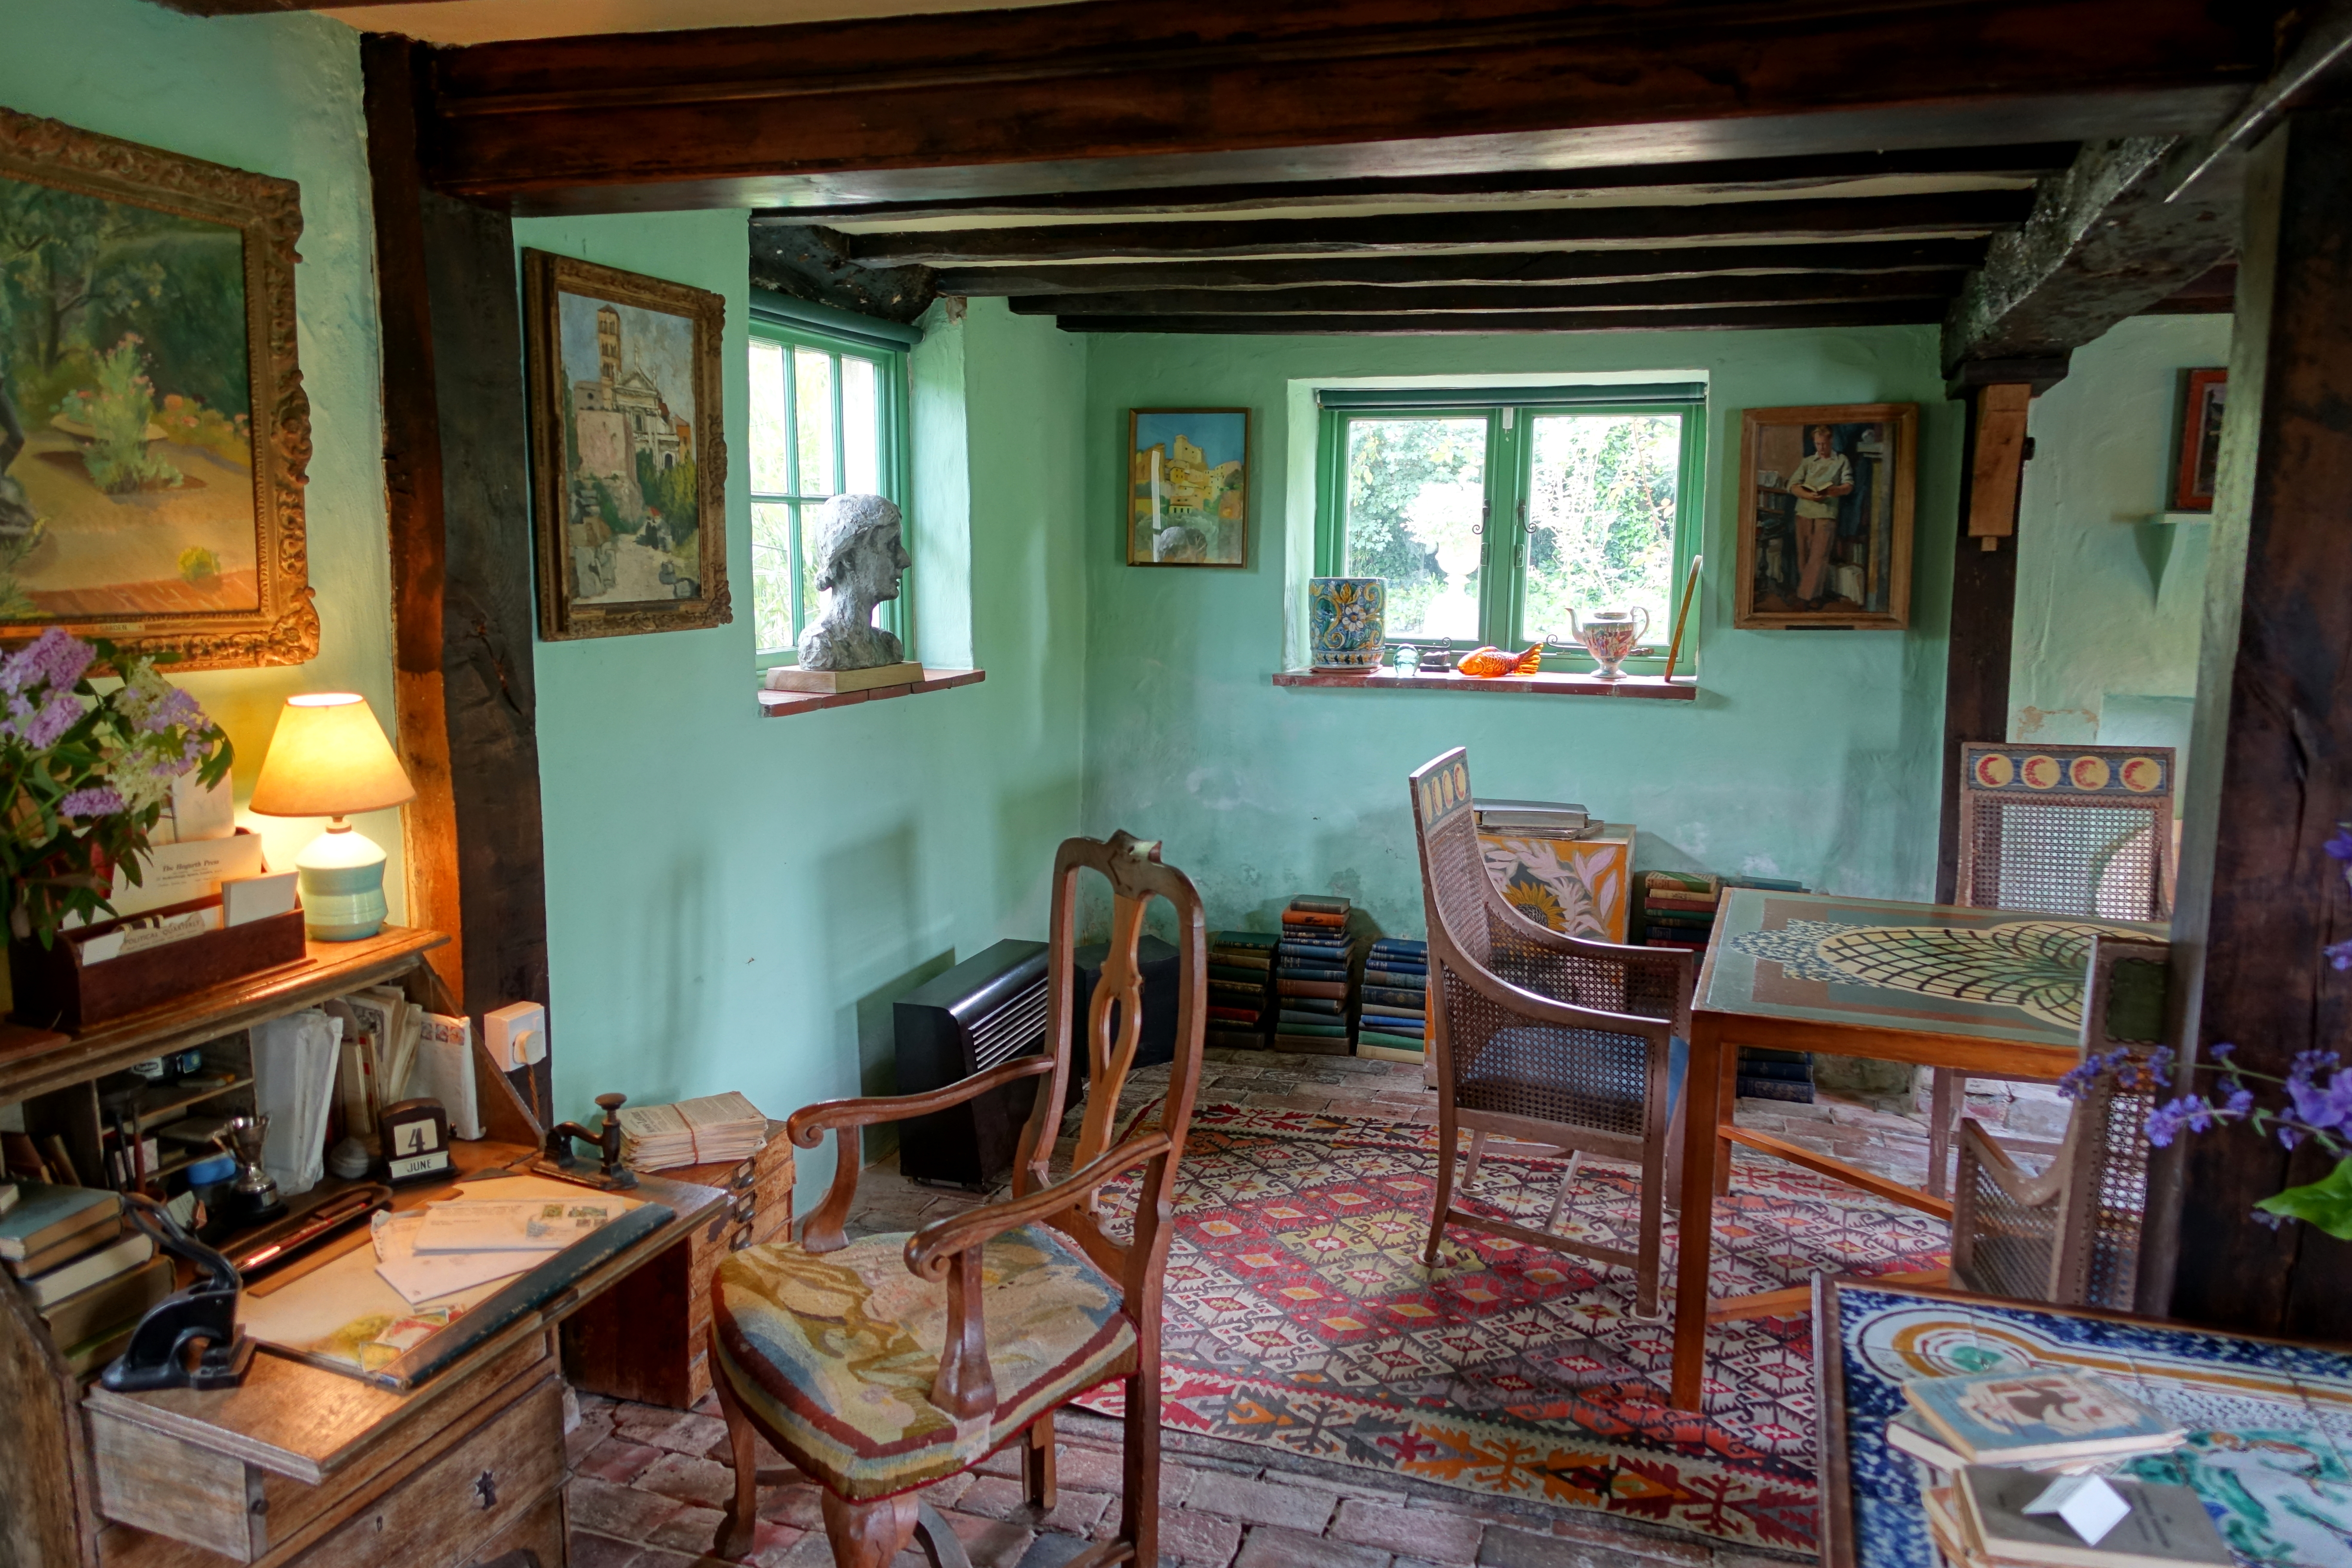 Virginia Woolfu0027s Sitting Room At Monku0027s House, East Sussex, One Exemplary  Space Of Modernist Production And Collaboration. Courtesy Wikimedia Commons.